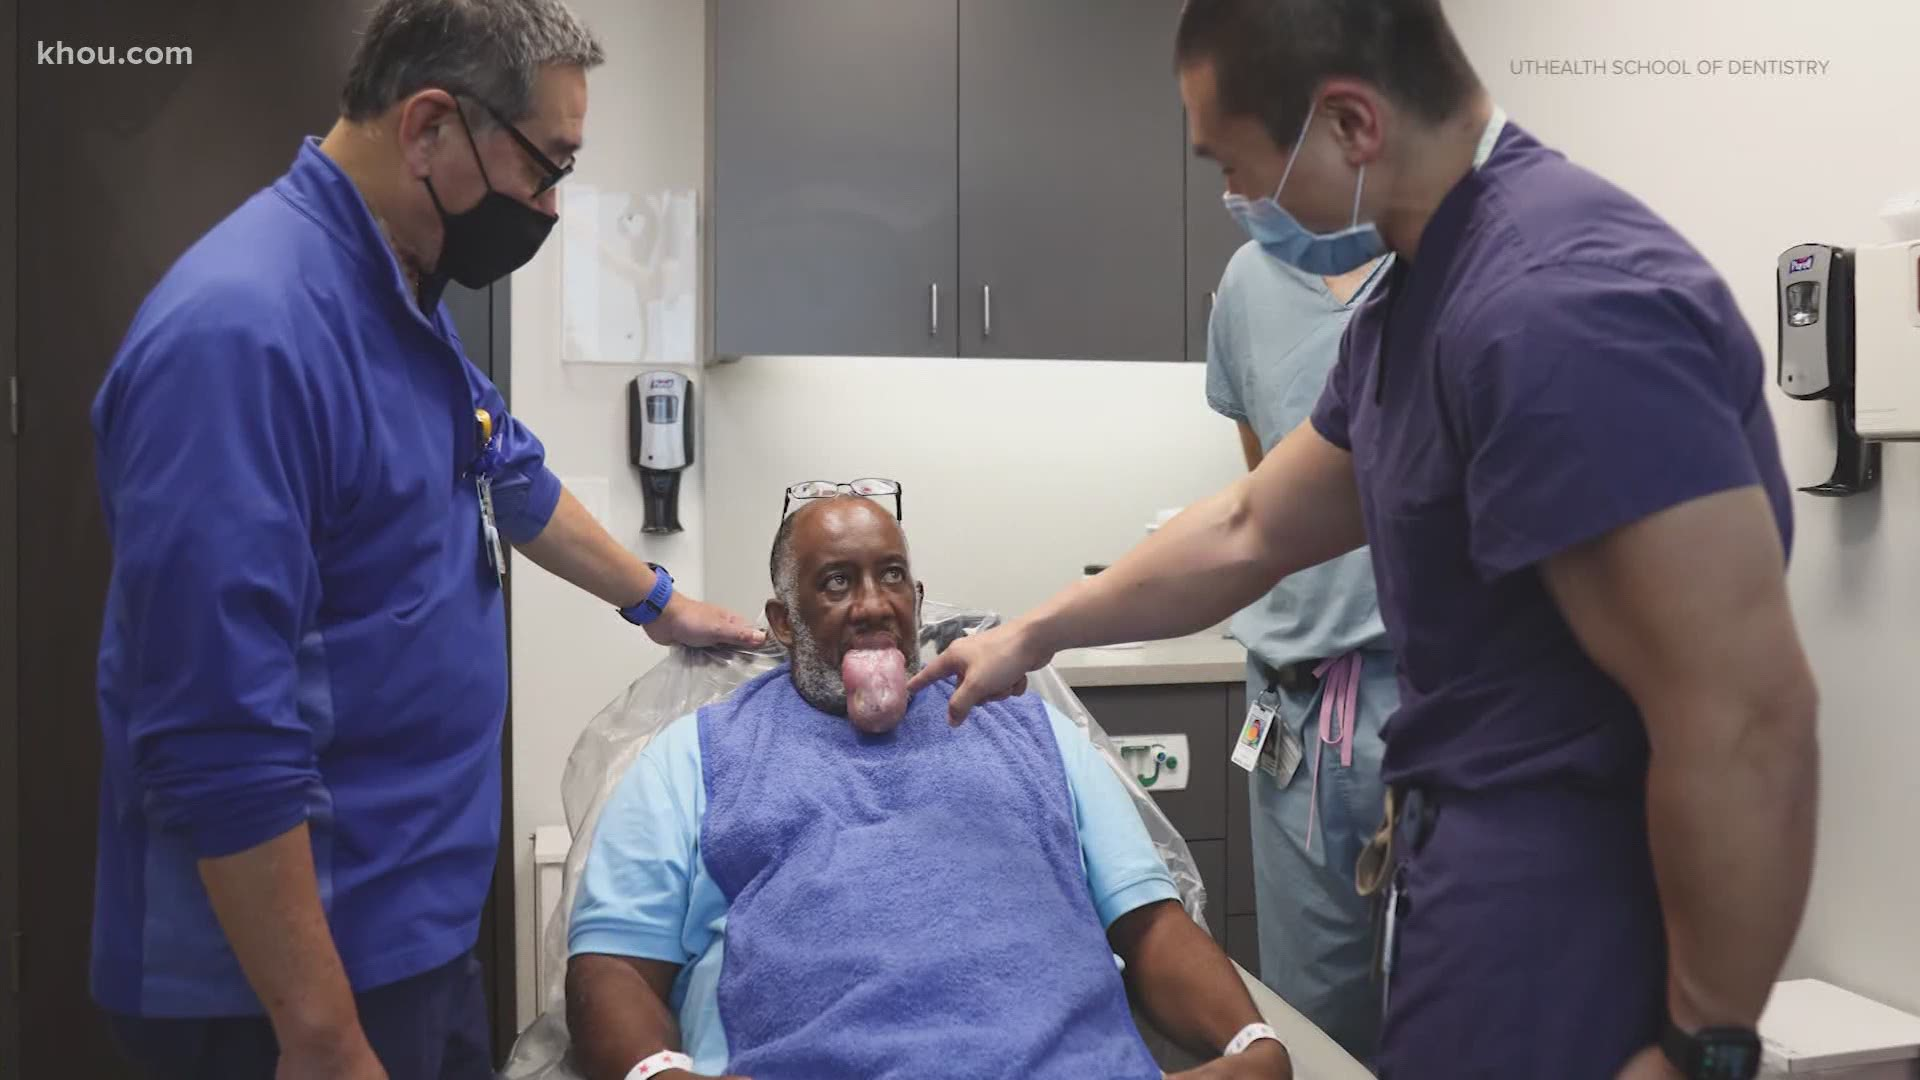 Florida COVID patient with enlarged tongue treated in Houston | khou.com